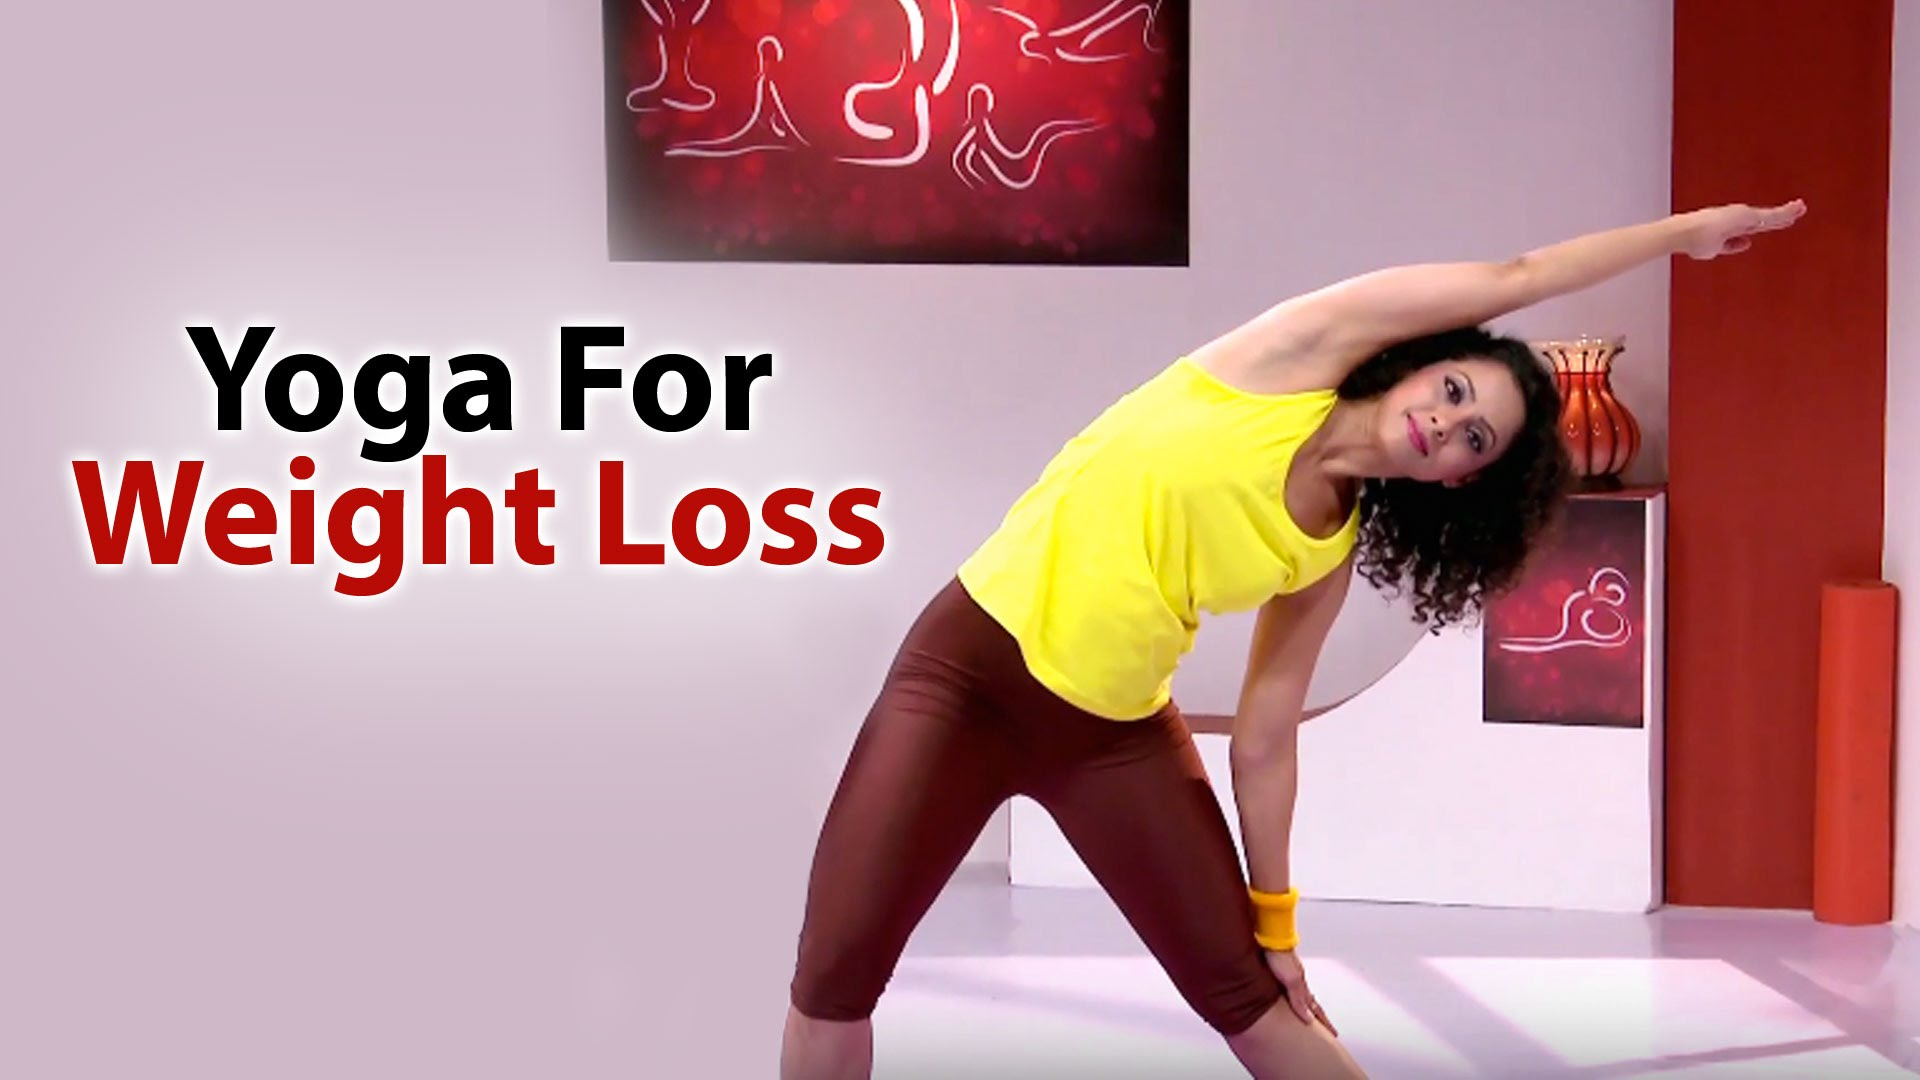 Yoga Weight Loss Fat Burning Yoga Workout Yoga For Life My Sweet Yoga